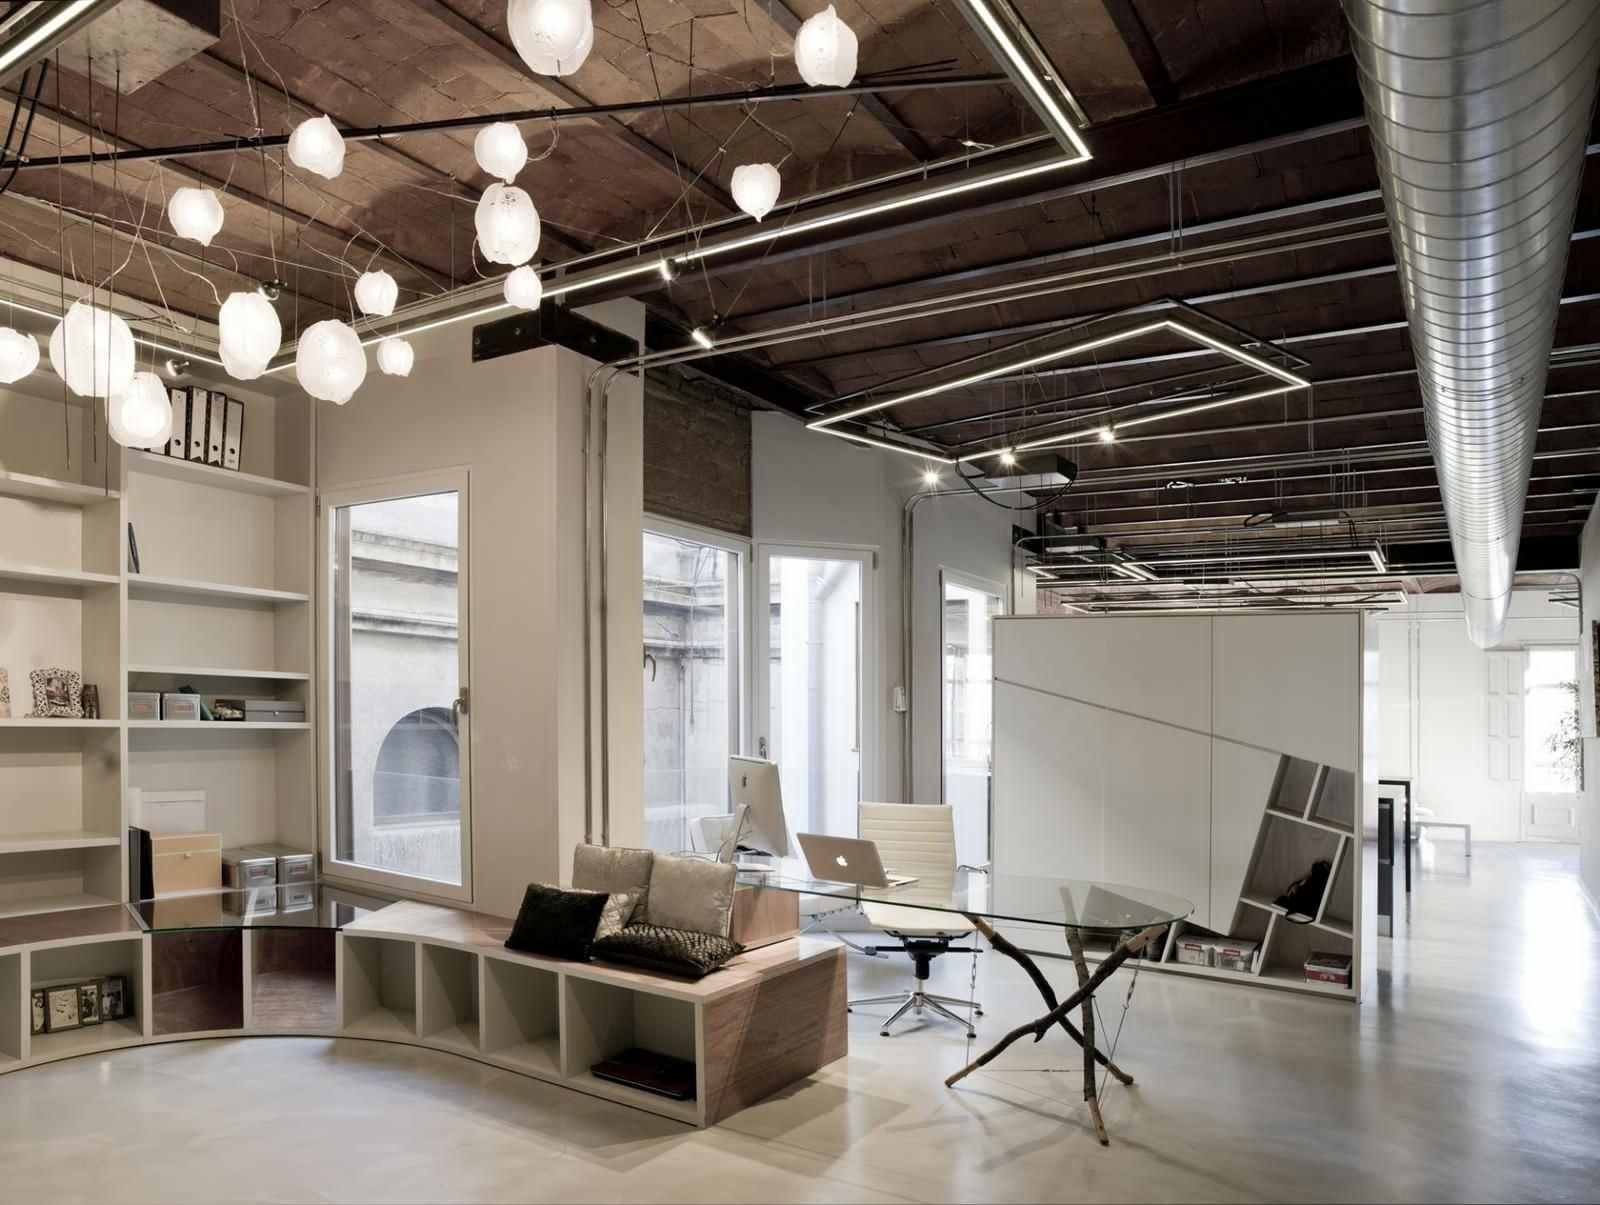 exposed lighting. image result for open ceiling designs exposed lighting i